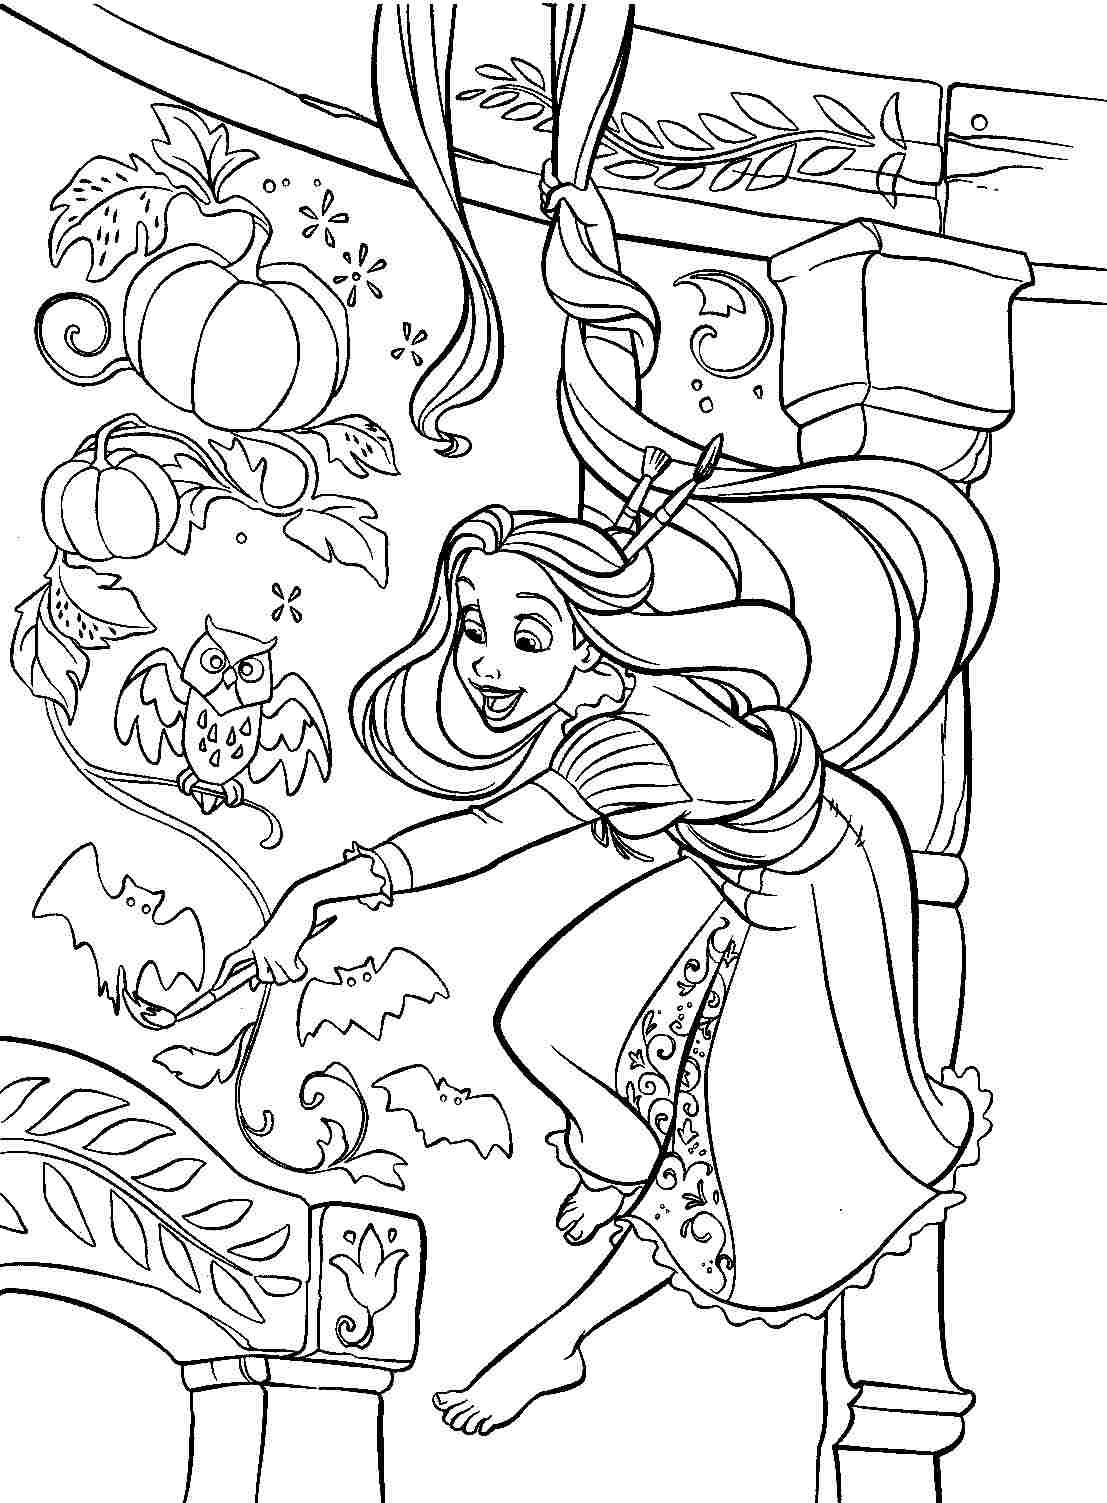 Printable coloring pages tangled - Free Printable Coloring Pages Disney Princess Tangled Rapunzel For Kids Girls